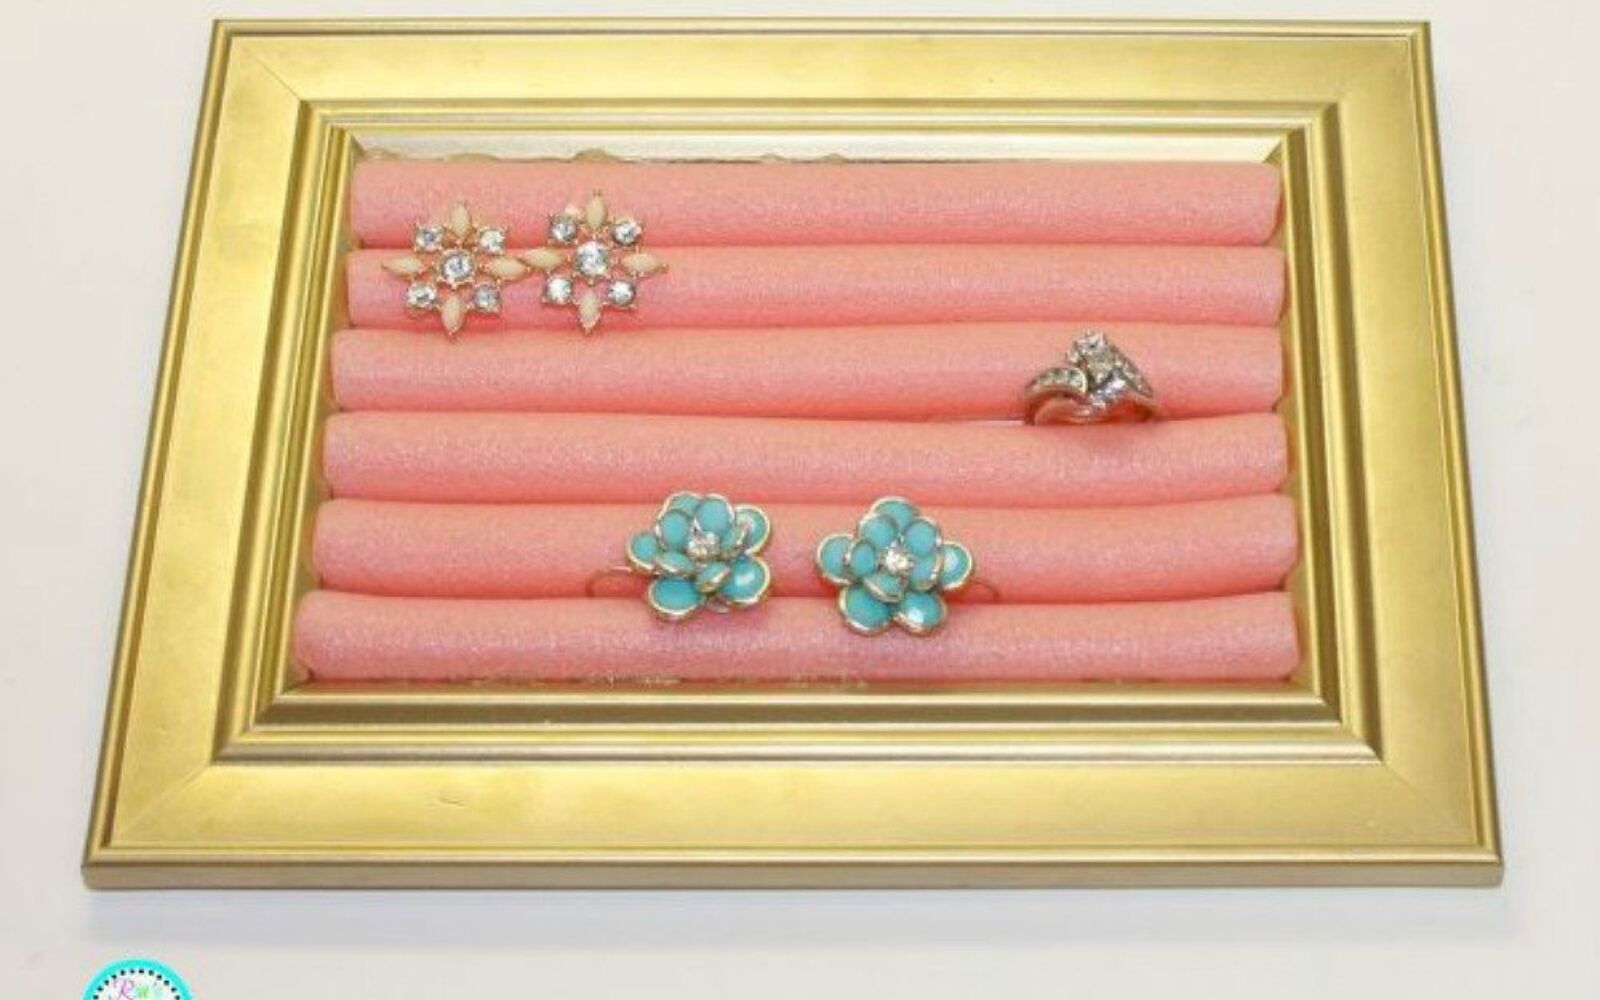 s 21 jewelry organizing ideas that are better than a jewelry box, organizing, Or this one with foam hair rollers